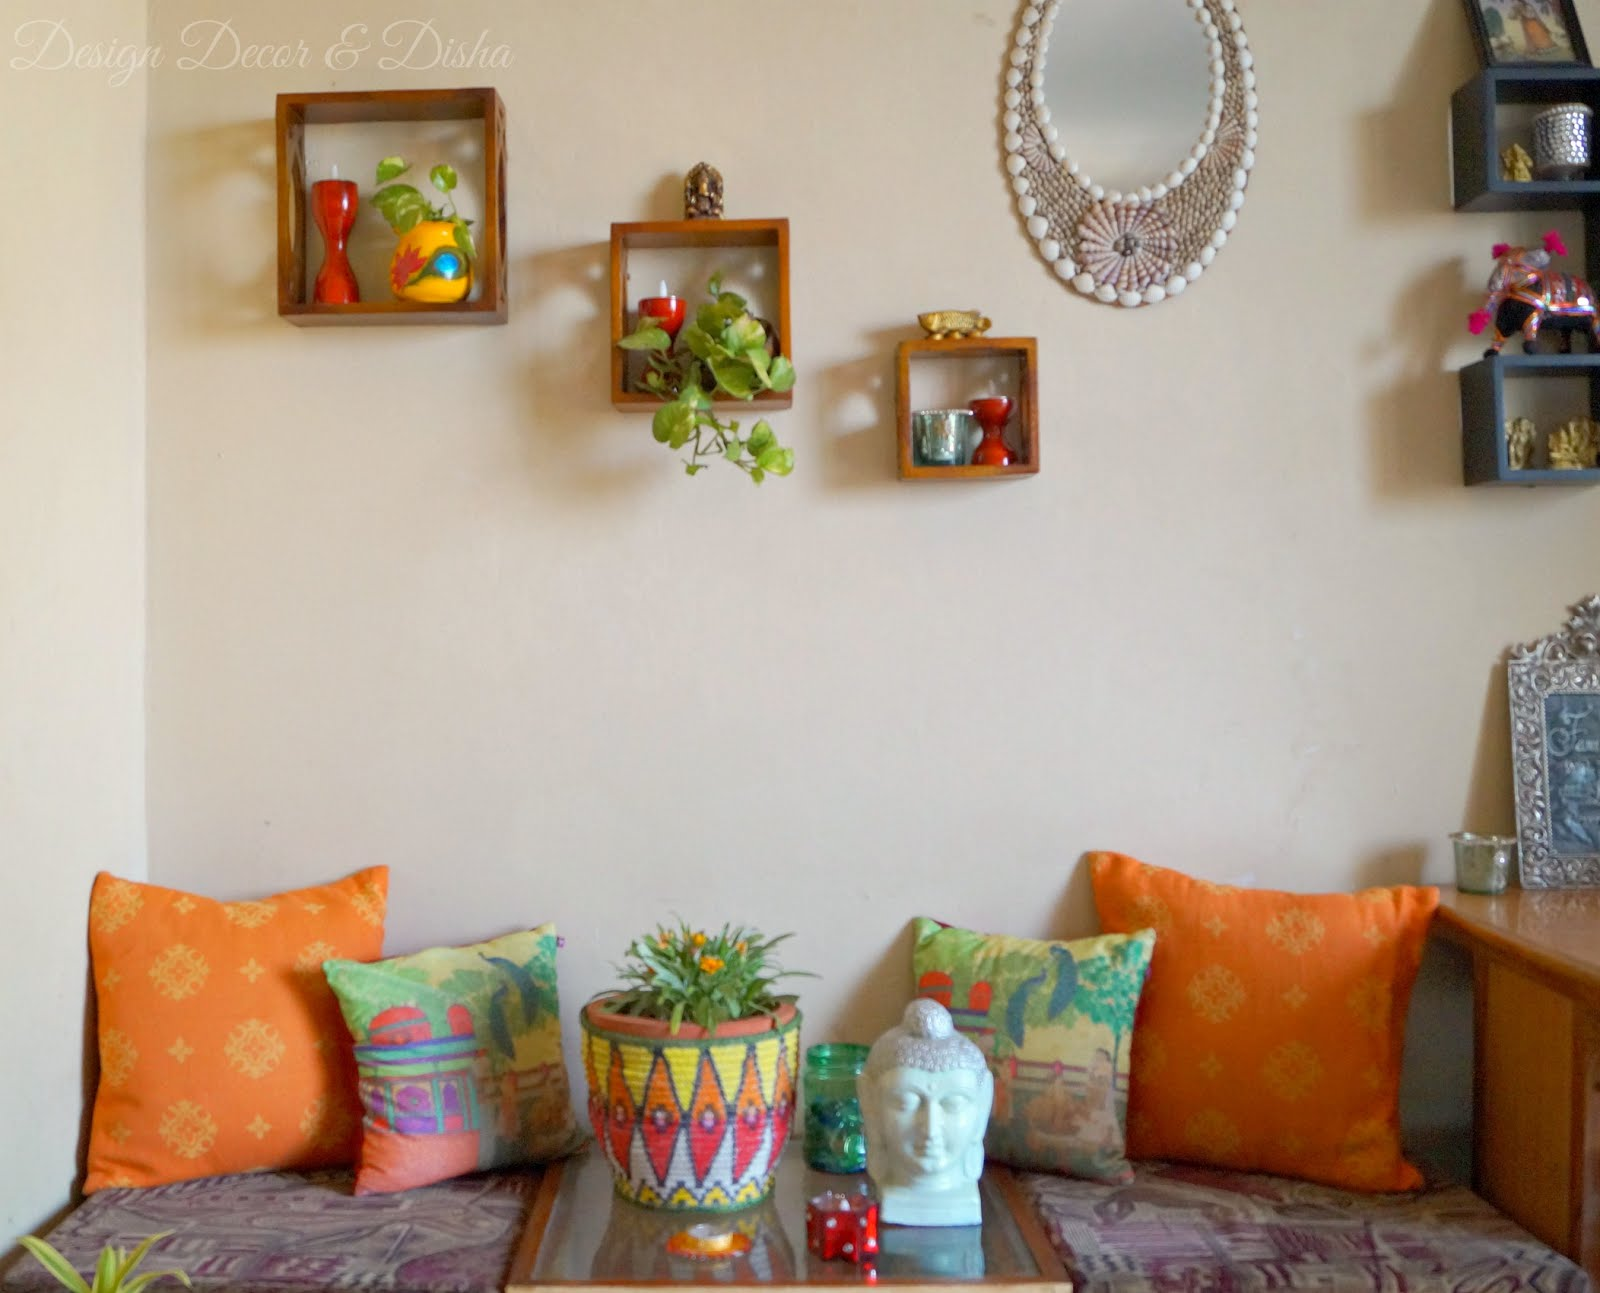 Design Decor & Disha | An Indian Design & Decor Blog: DIY African ...